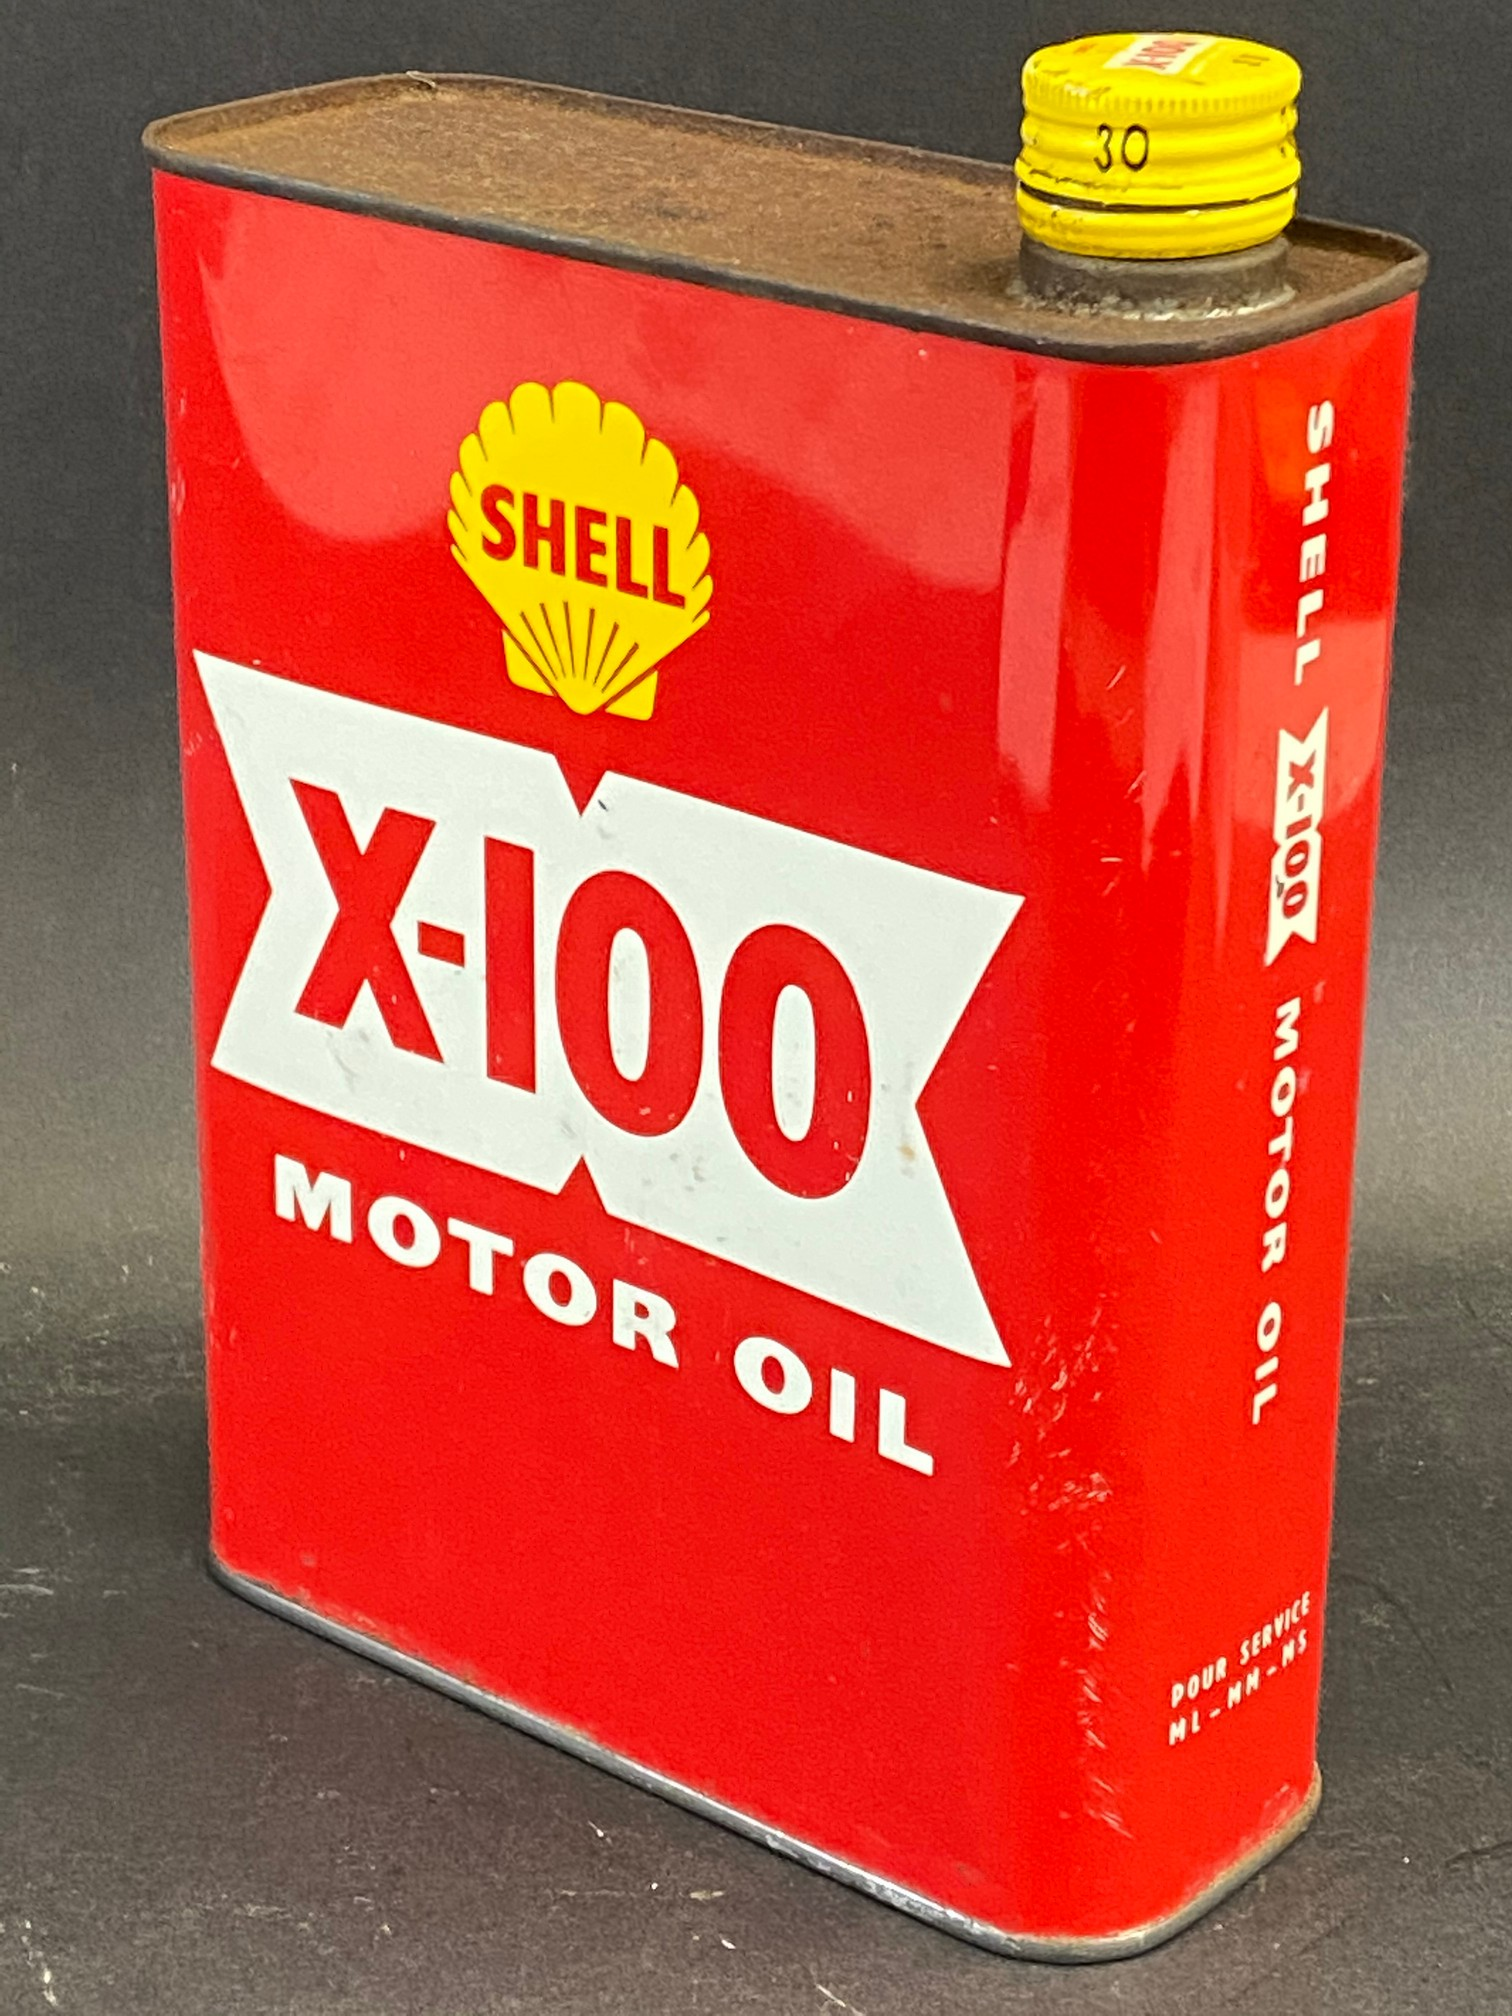 A red Shell X-100 Motor Oil can.